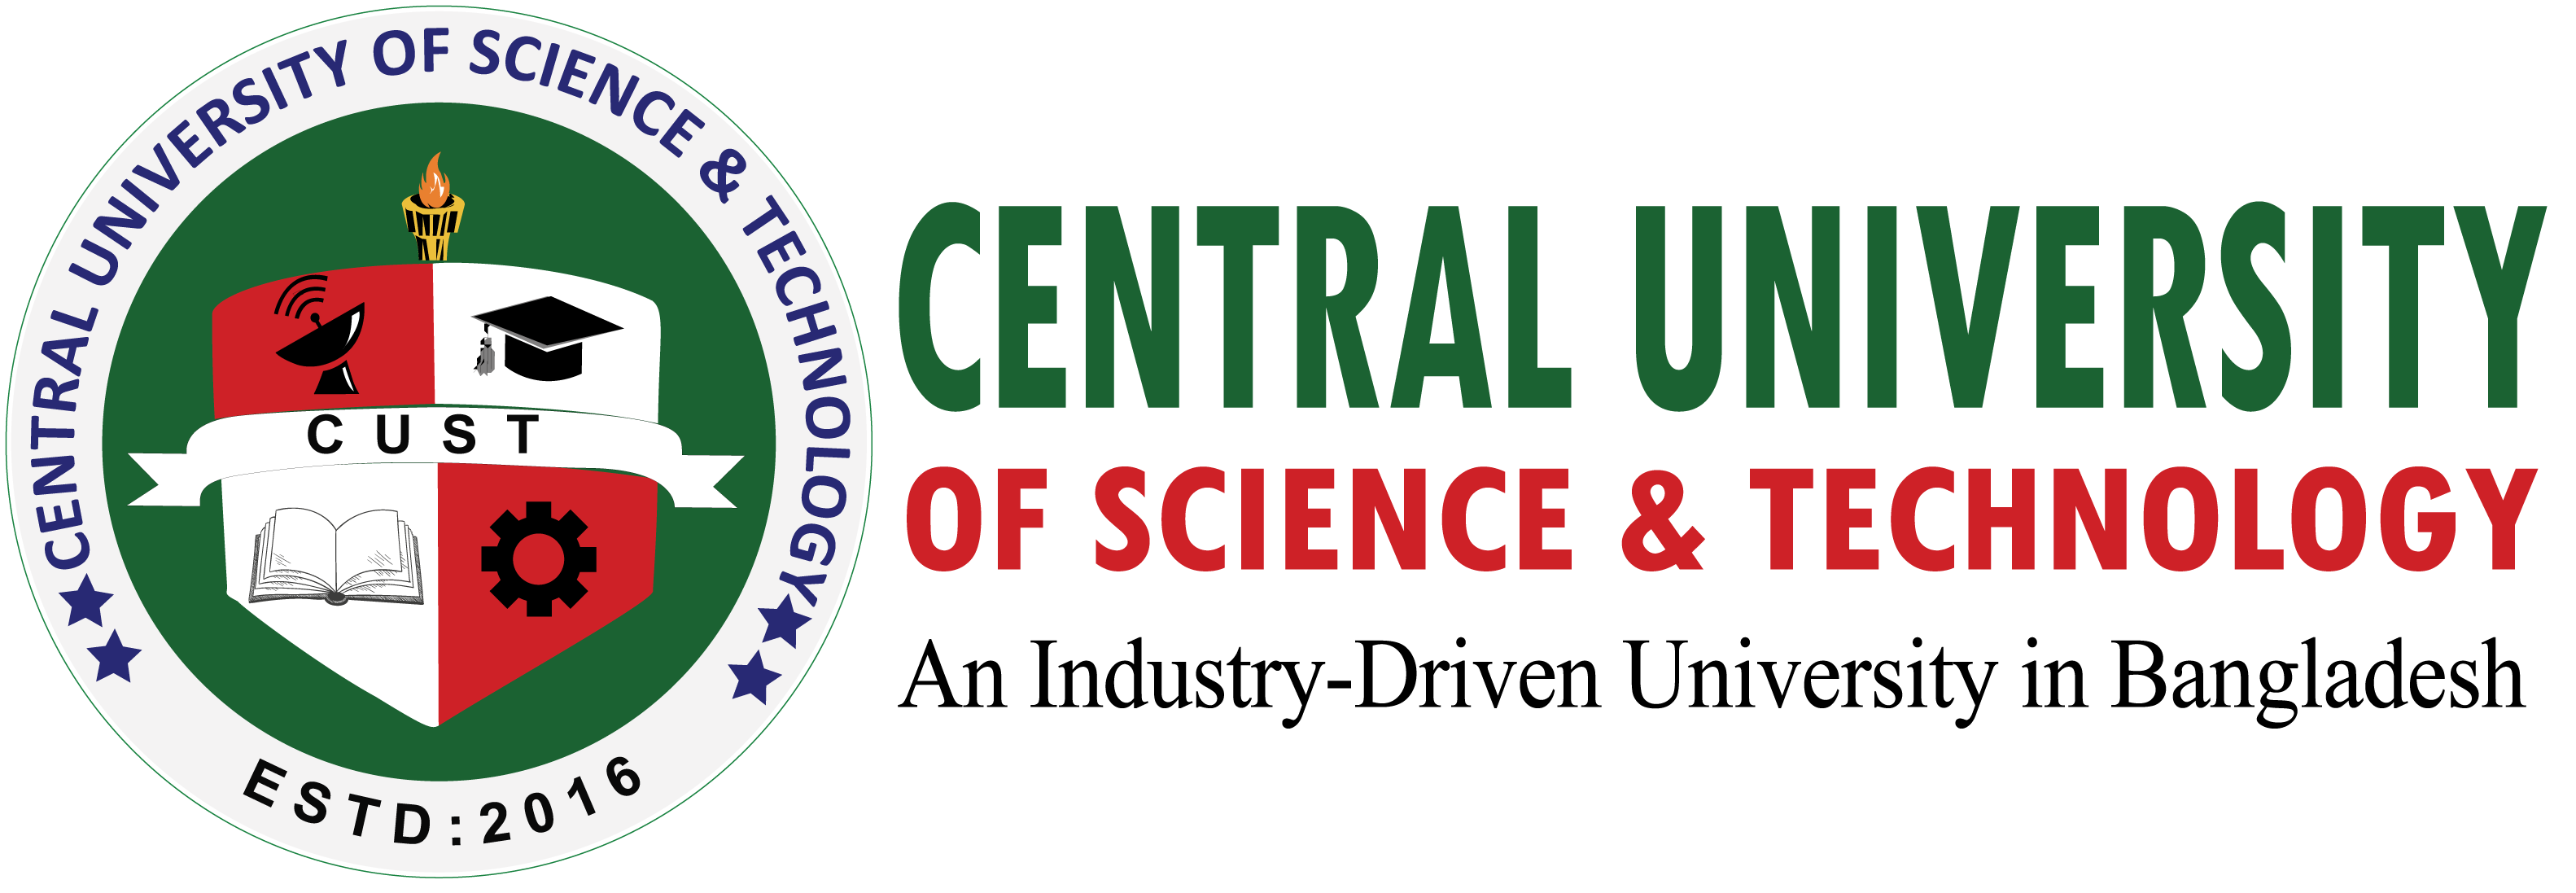 Grading Policy - Central University of Science and Technology